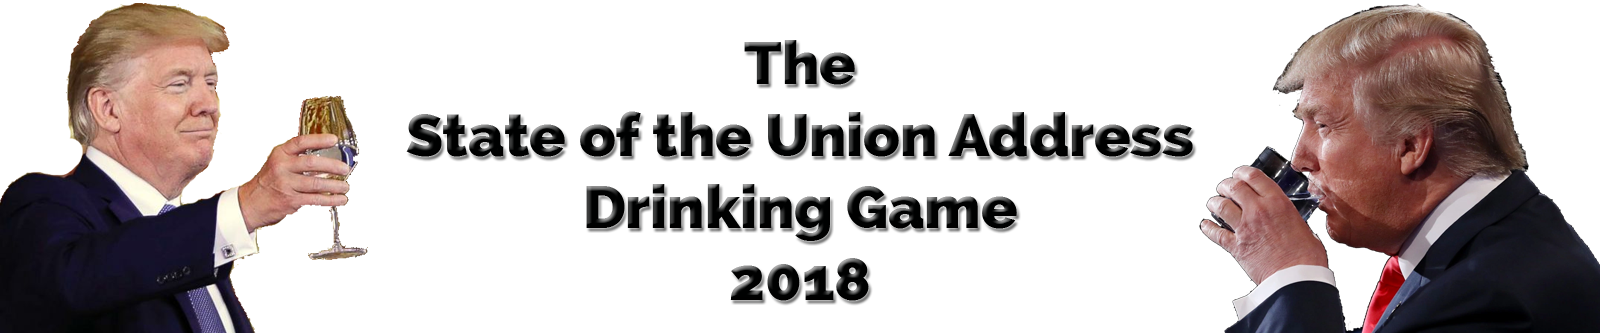 The State Of The Union Address Drinking Game 2018